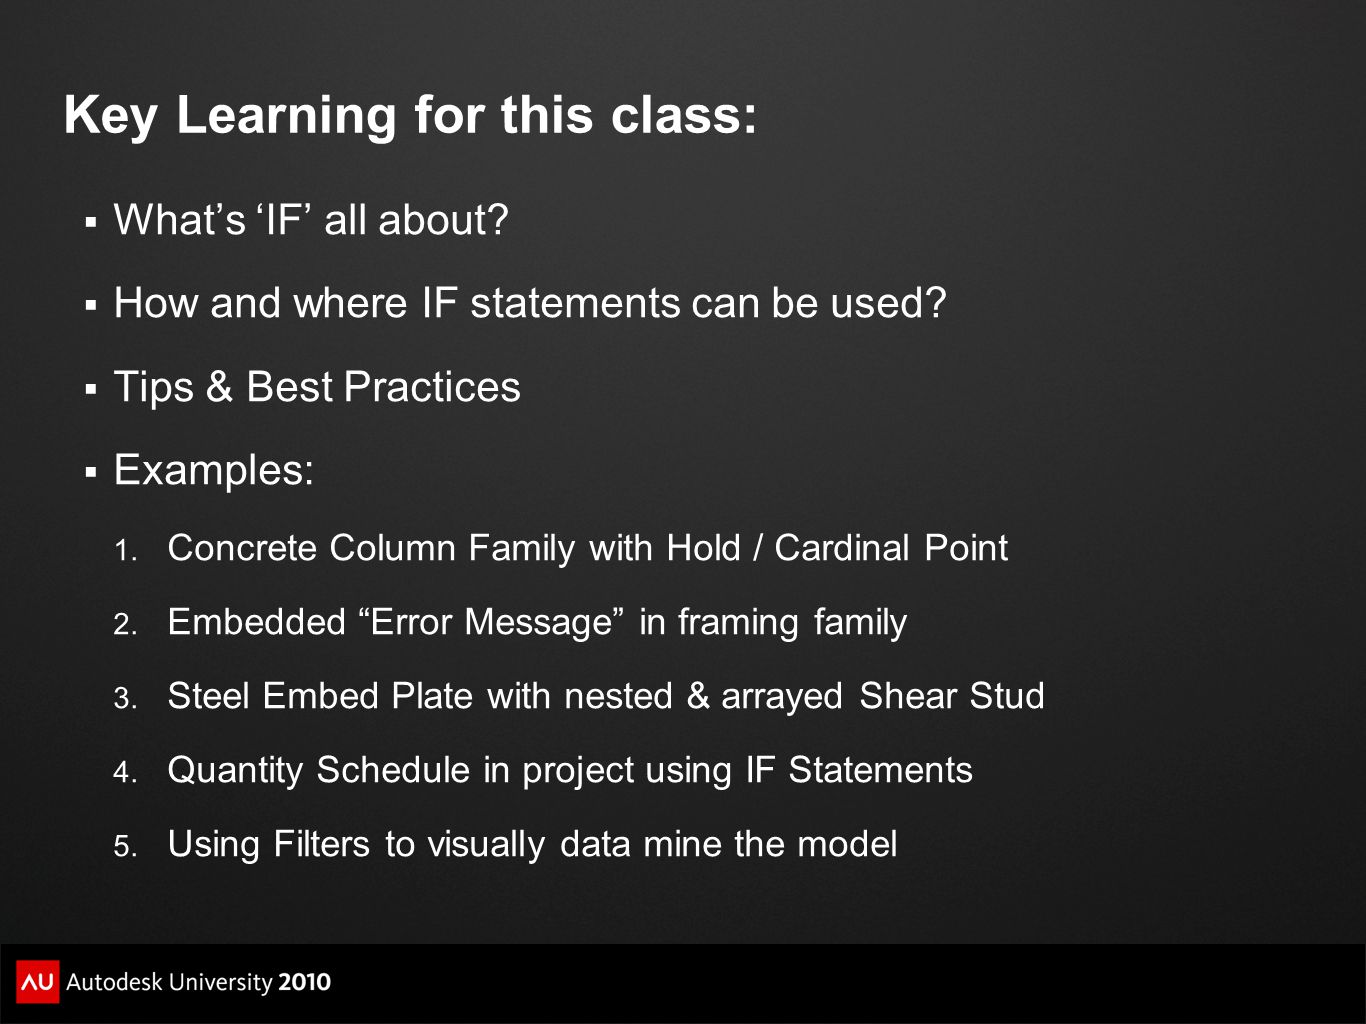 Key Learning for this class: